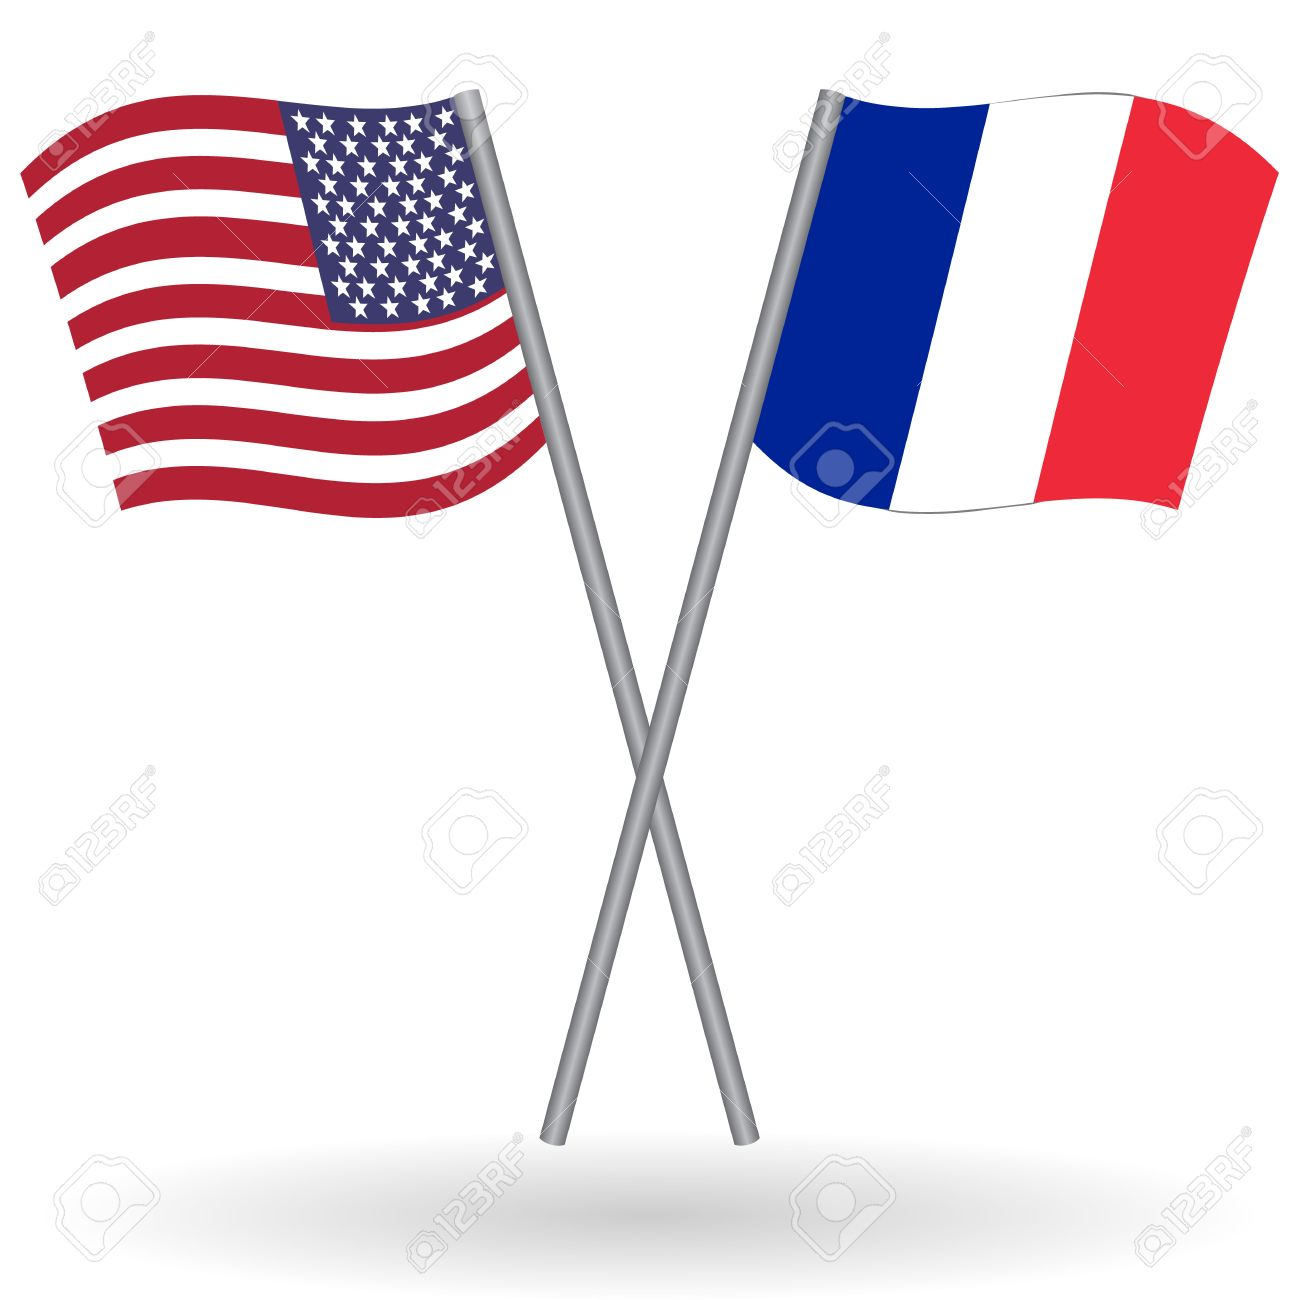 american and french flags this flags represents the relationship